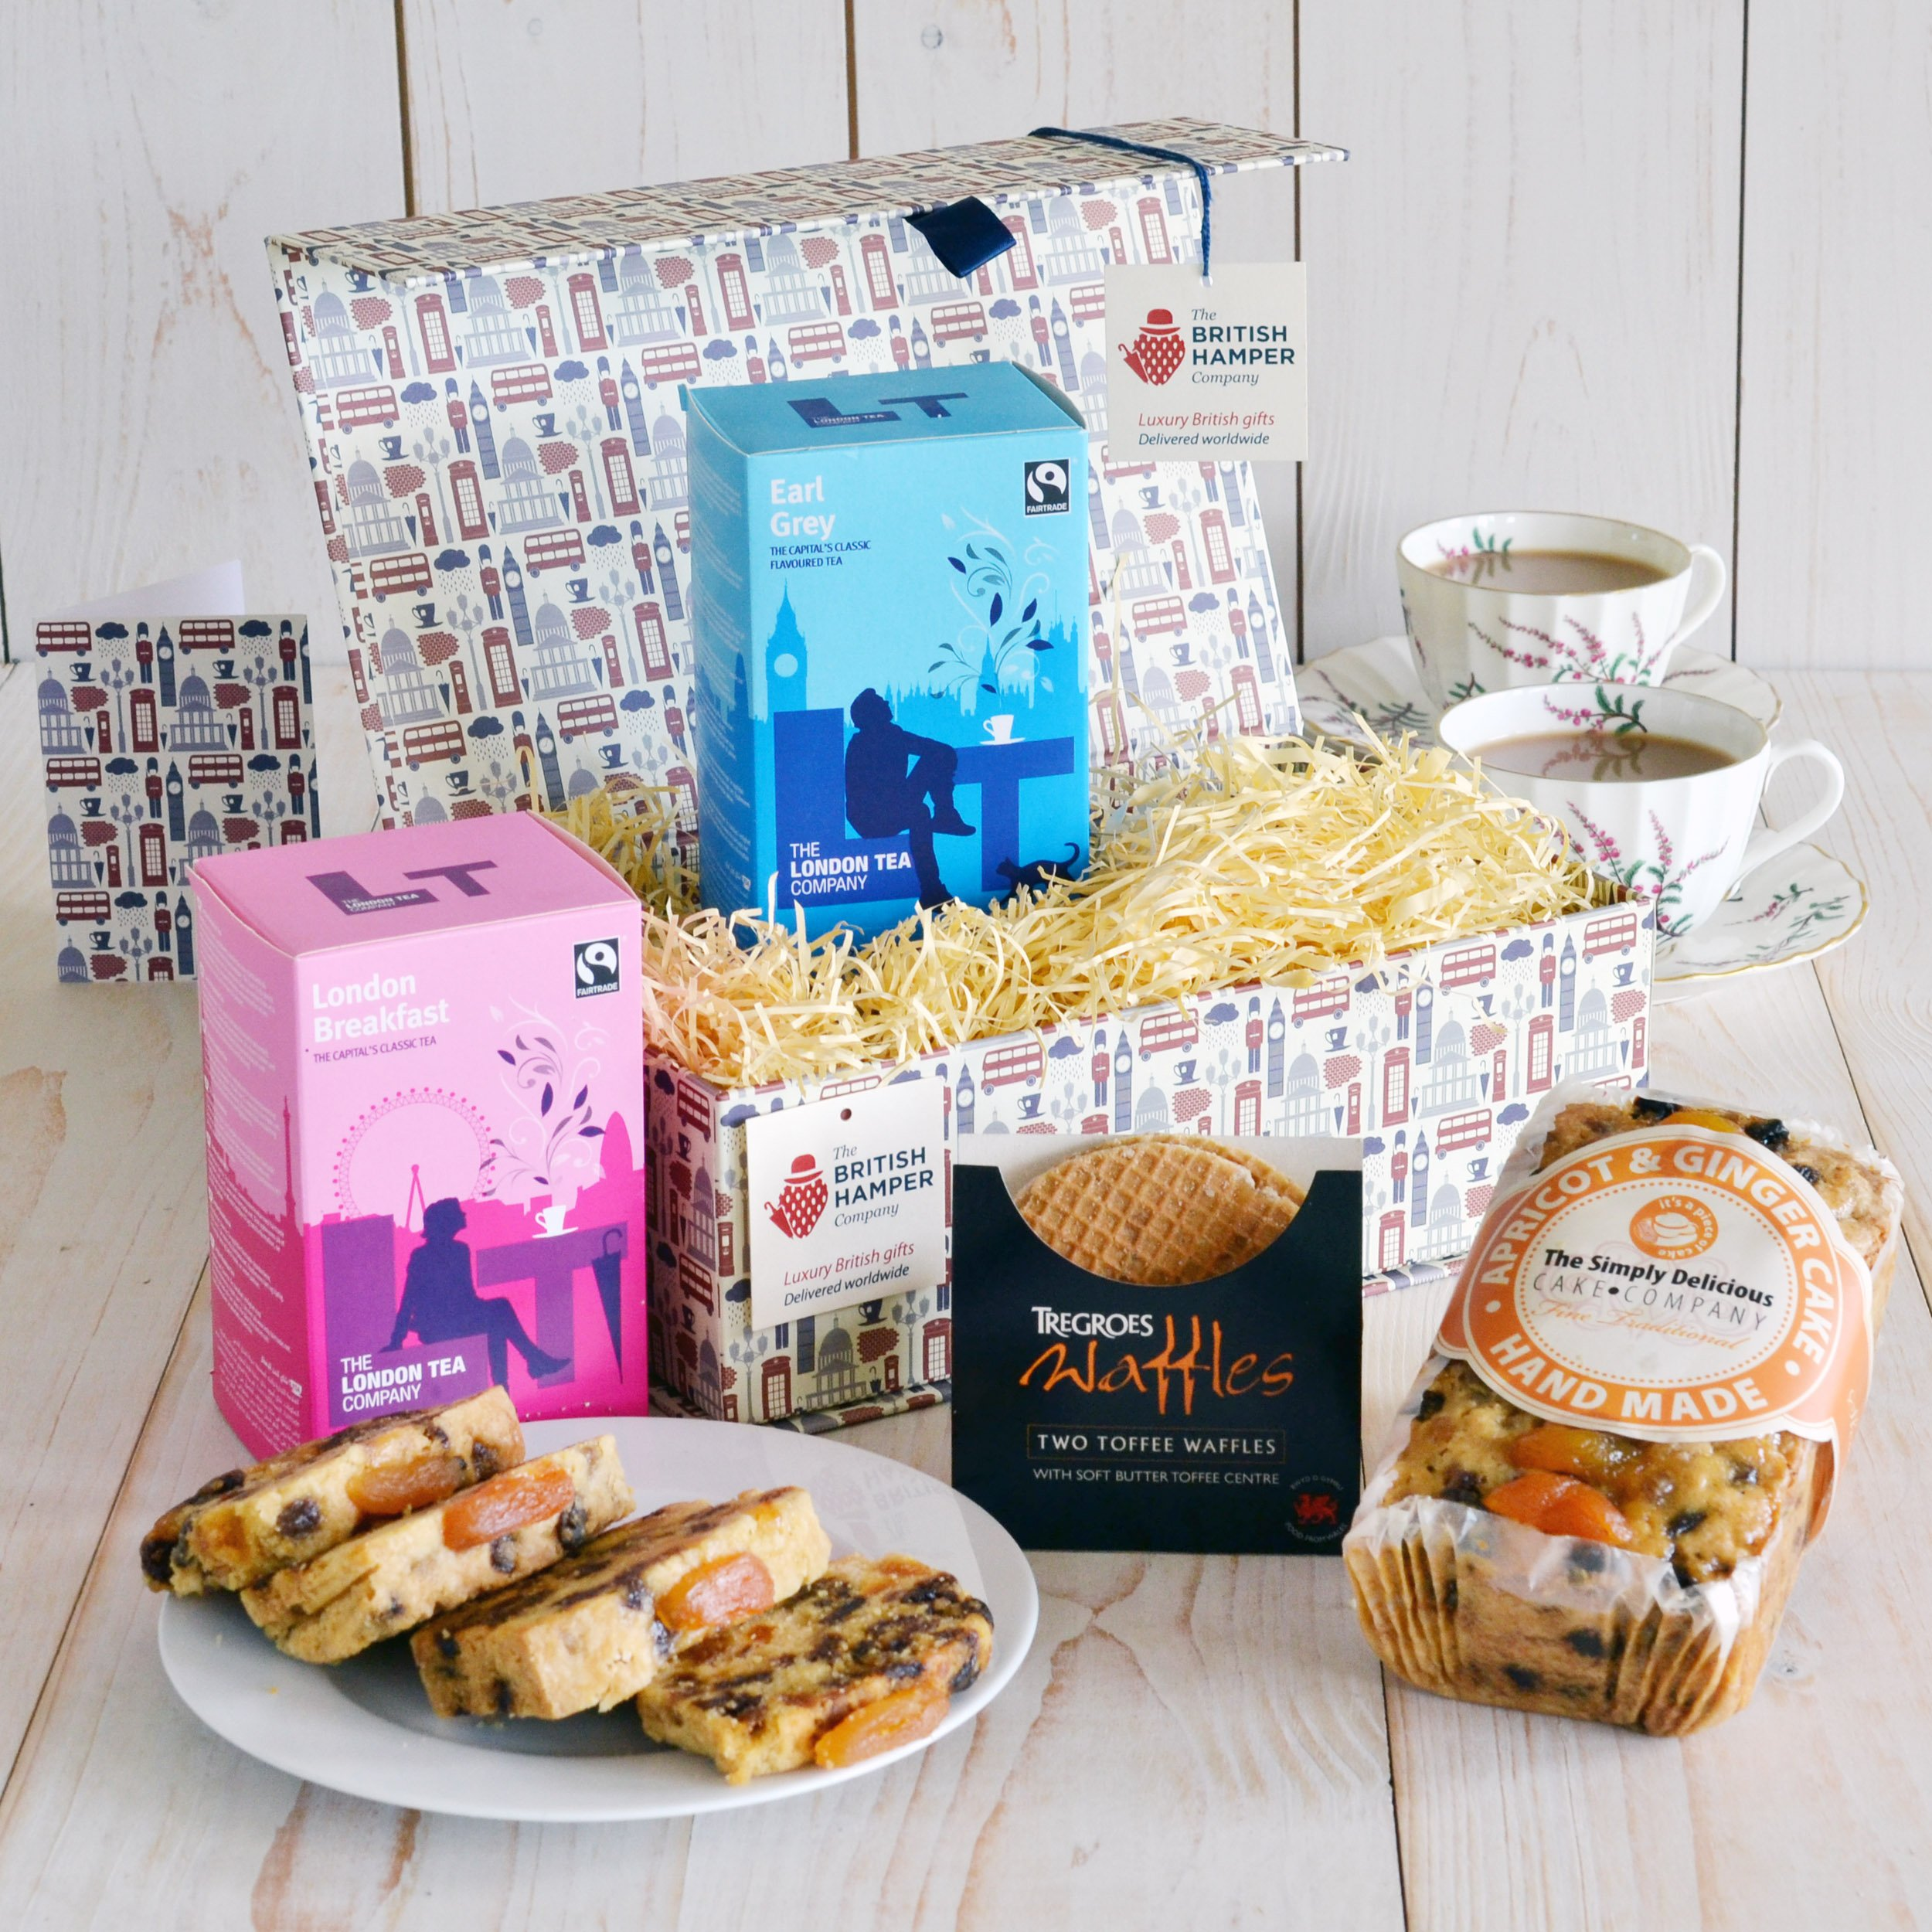 British Afternoon Tea for Two Gift - Gourmet Food Basket - Gift Card Included by The British Hamper Company (Image #1)